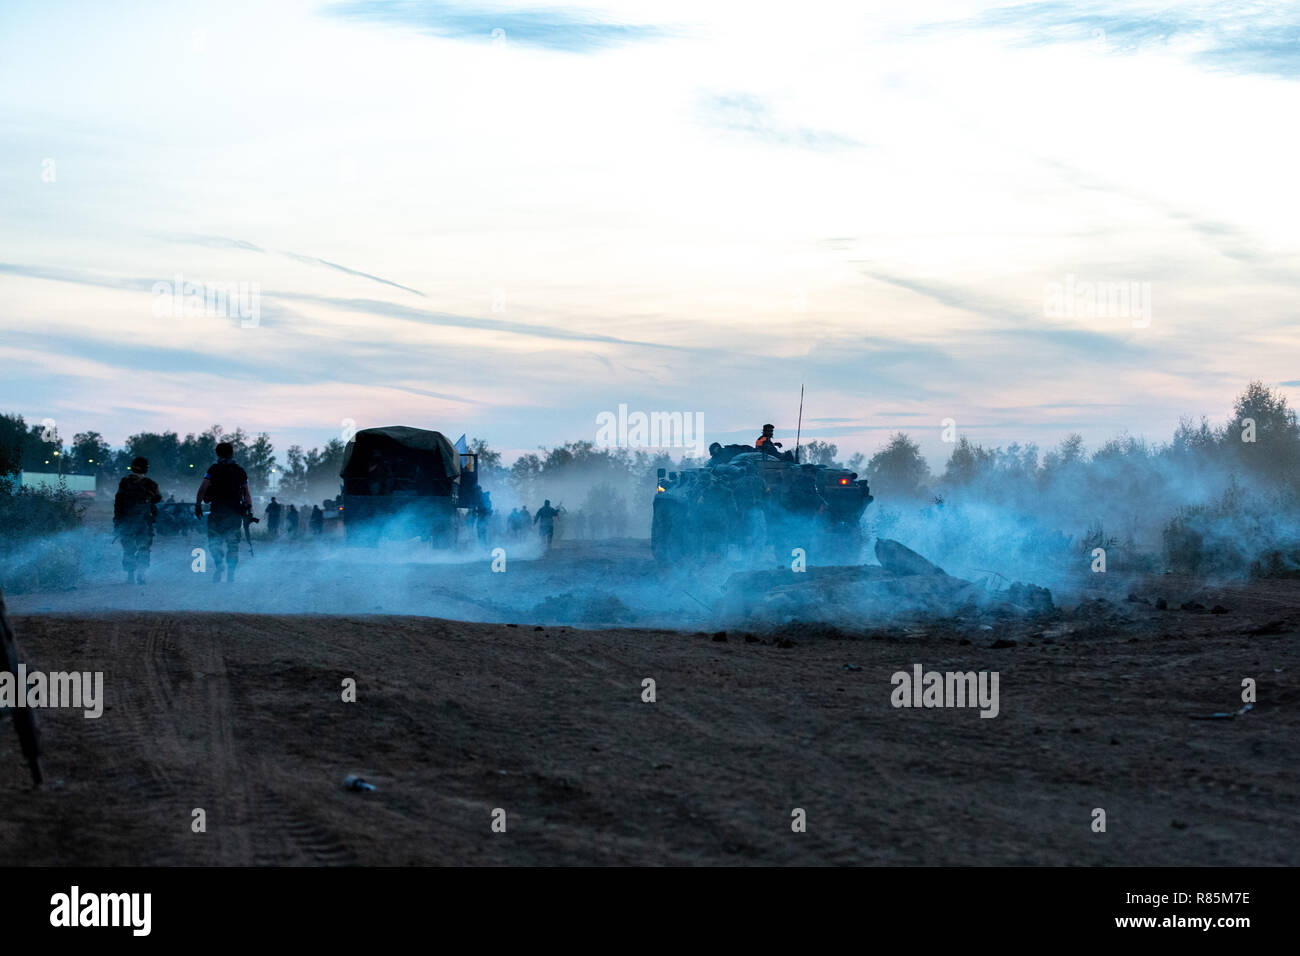 Army soldiers during the military operation. war, army, technology and people concept Stock Photo